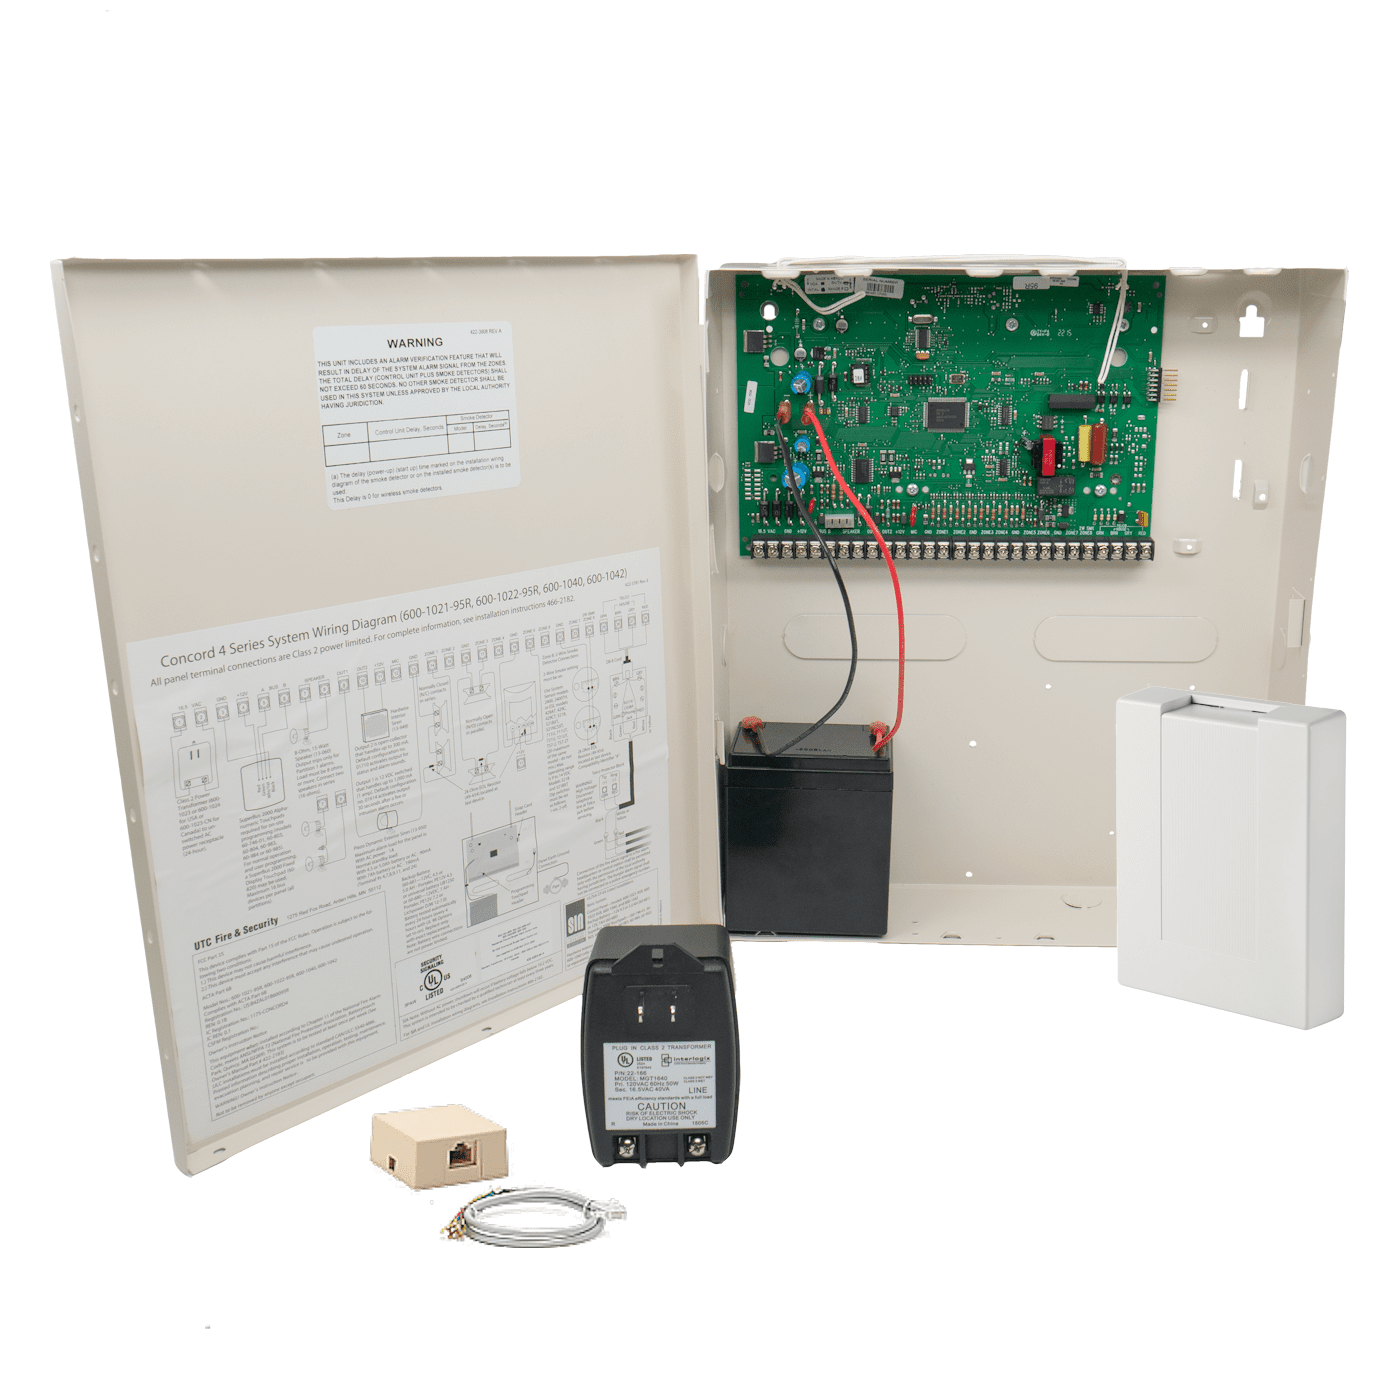 Concord 4 Alarm Wiring Diagram - Wiring Diagram Bookmark on